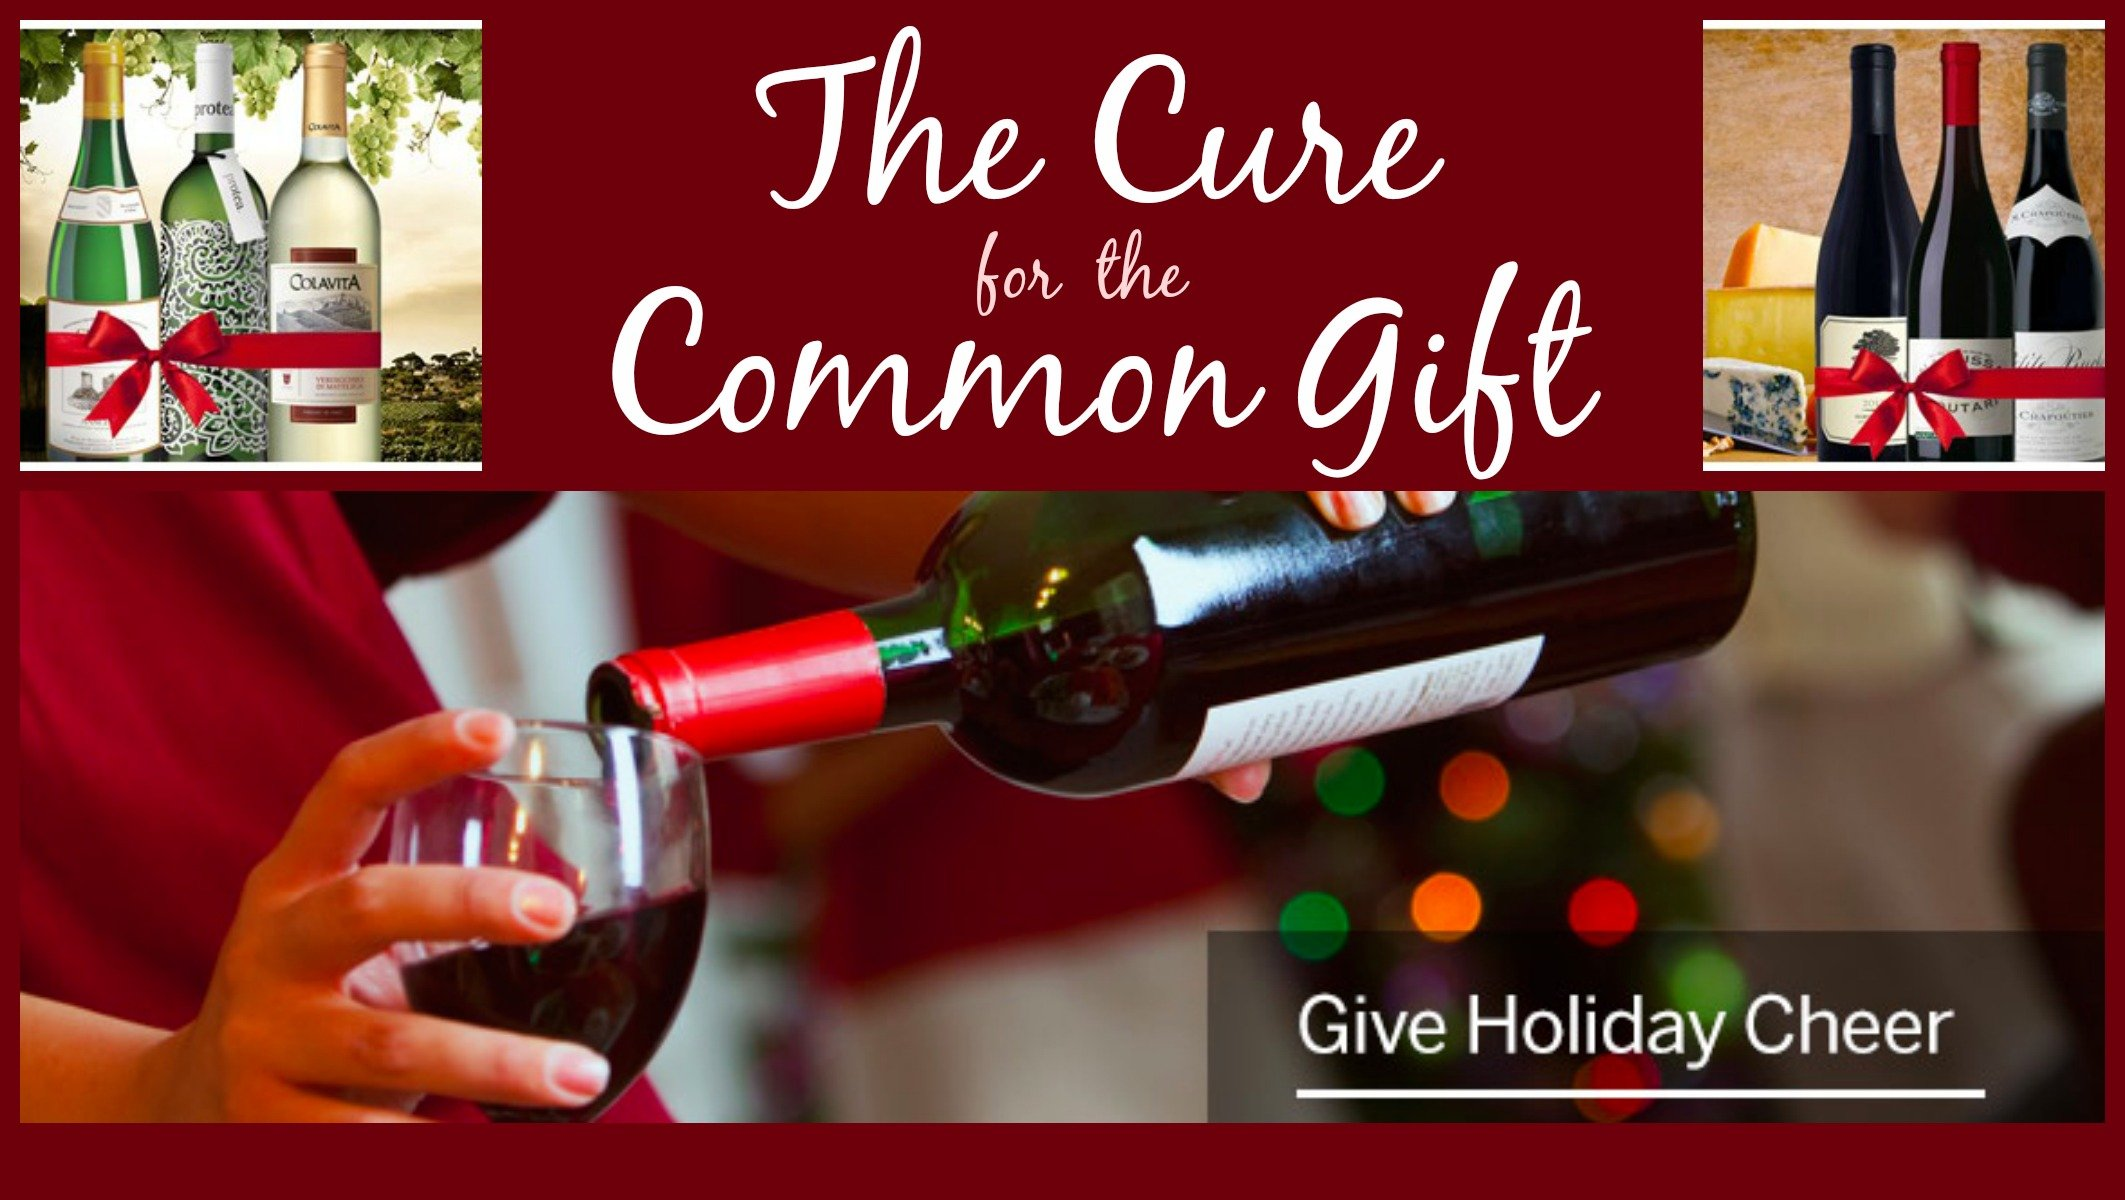 Give Holiday Cheer - Gift a Wine Club Subscription